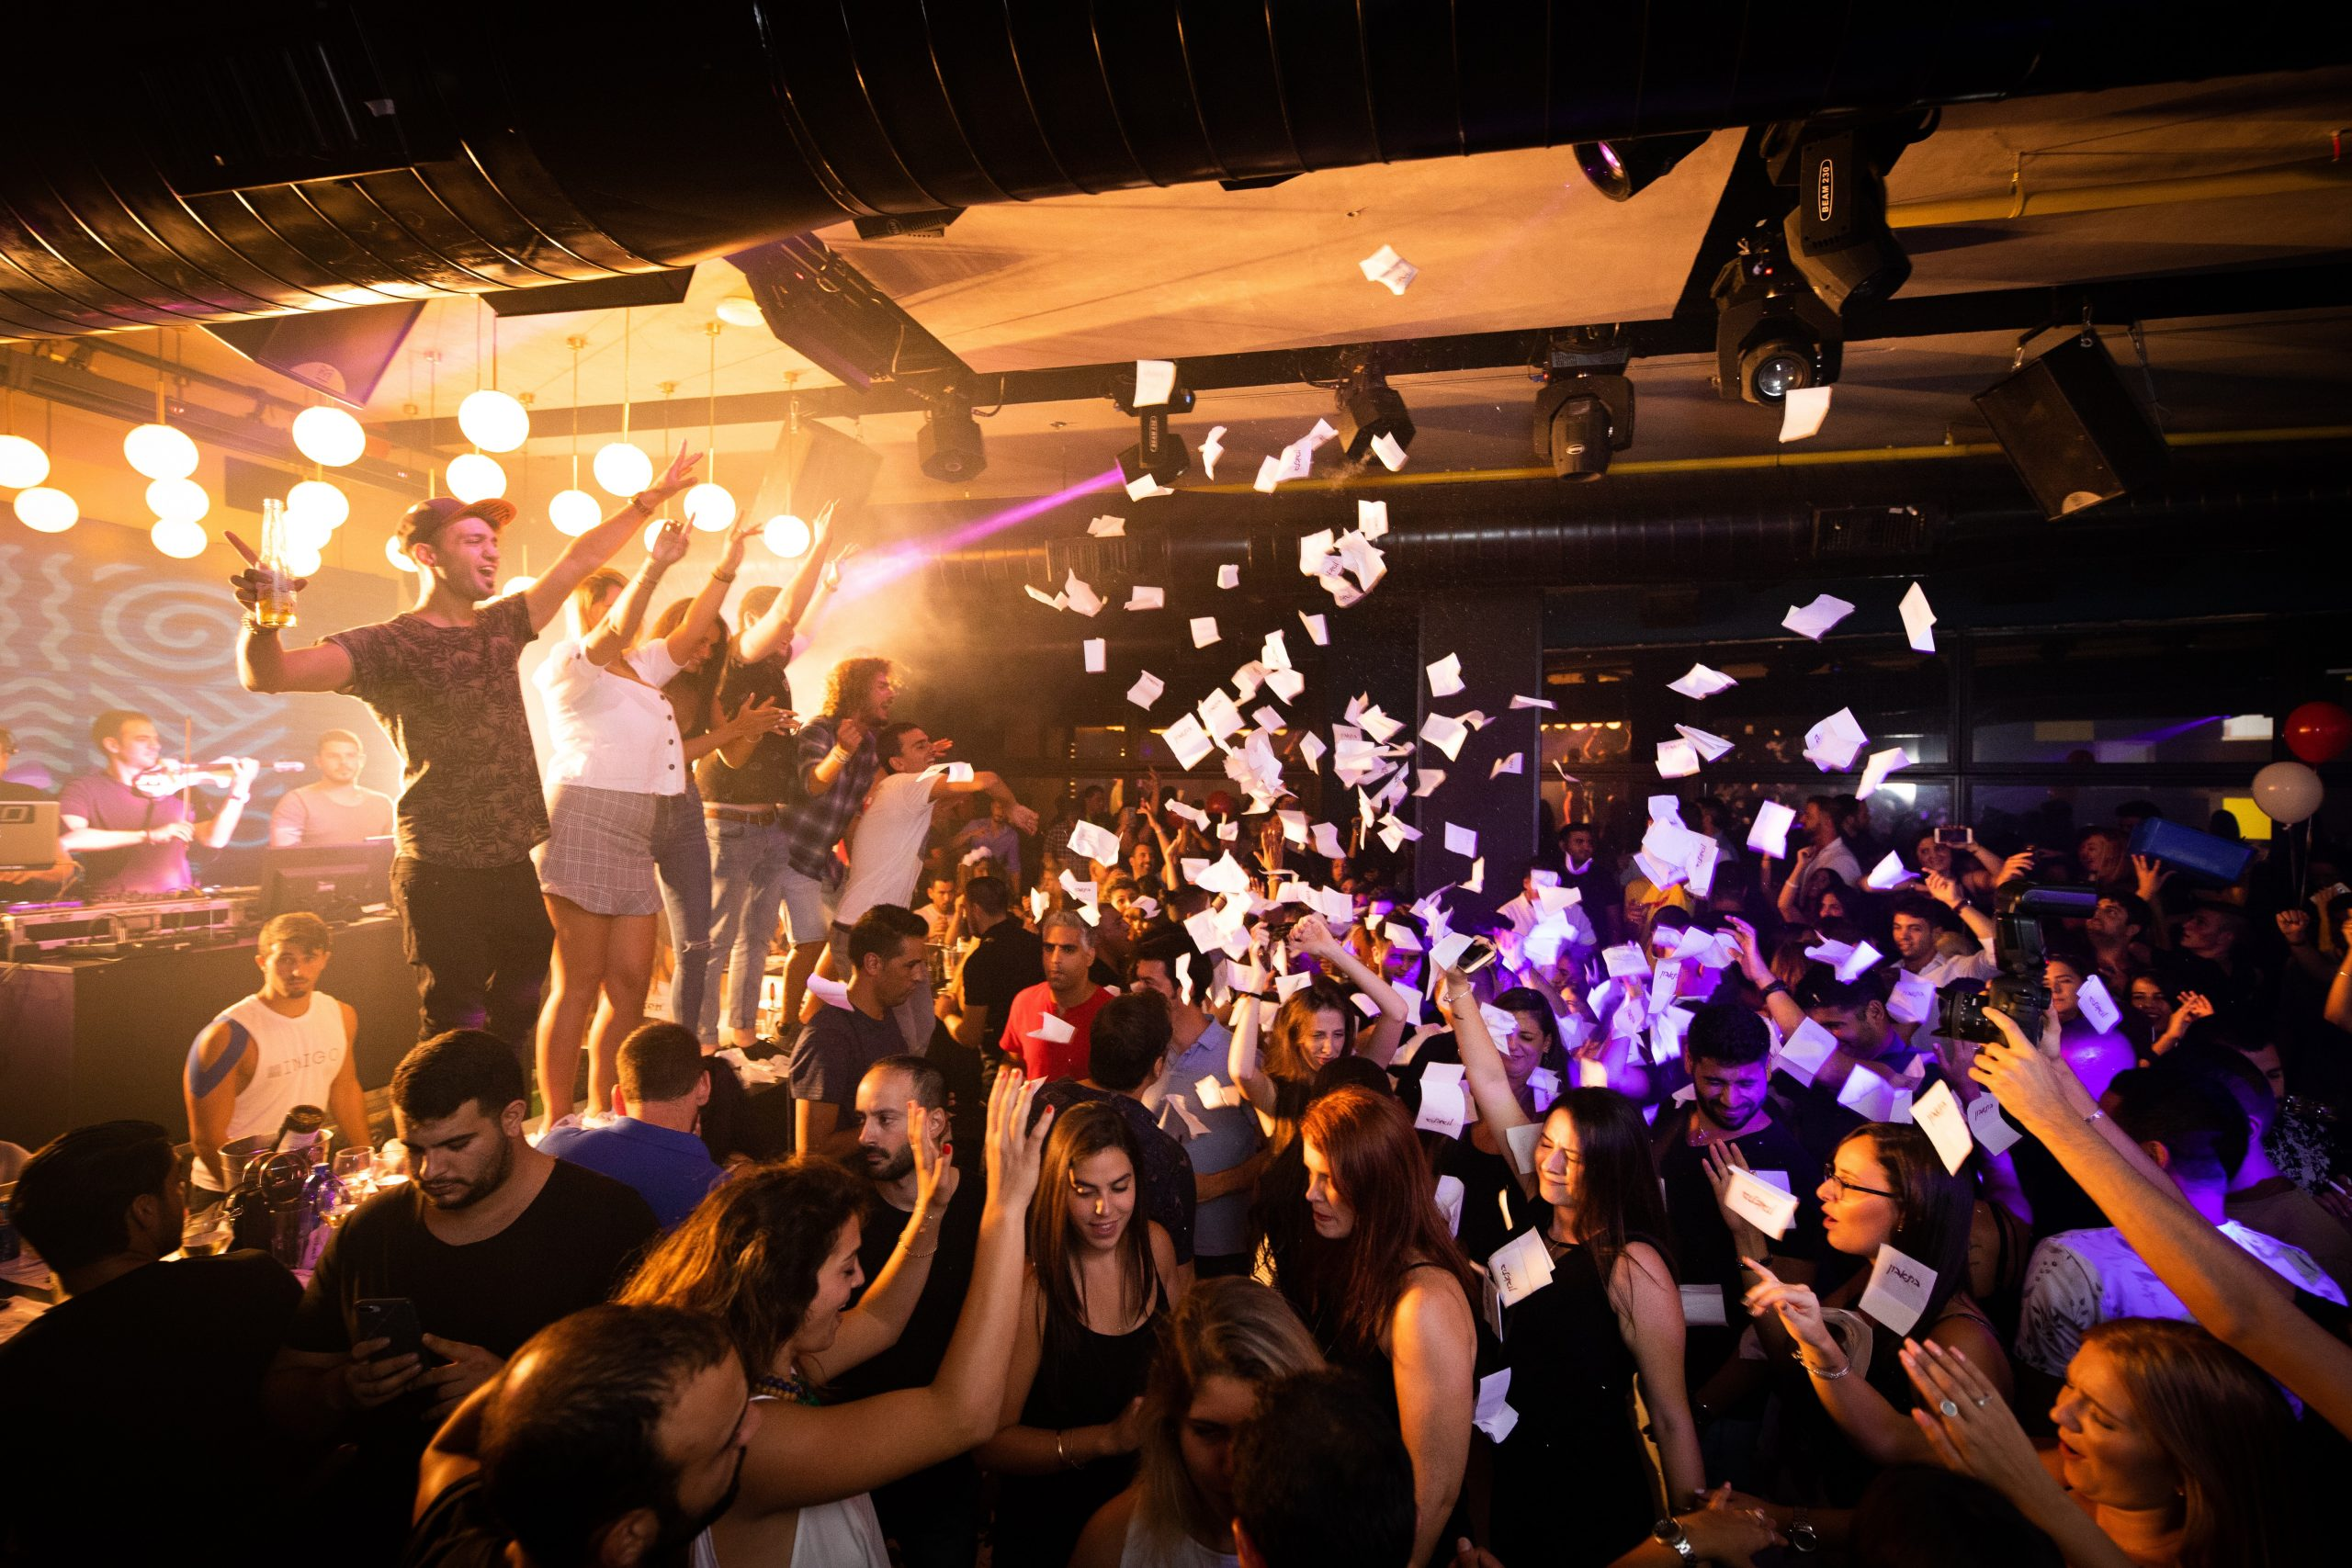 ABSENTEE OWNER Vegas Party Bus and Club Crawls – EXPLOSIVE Growth